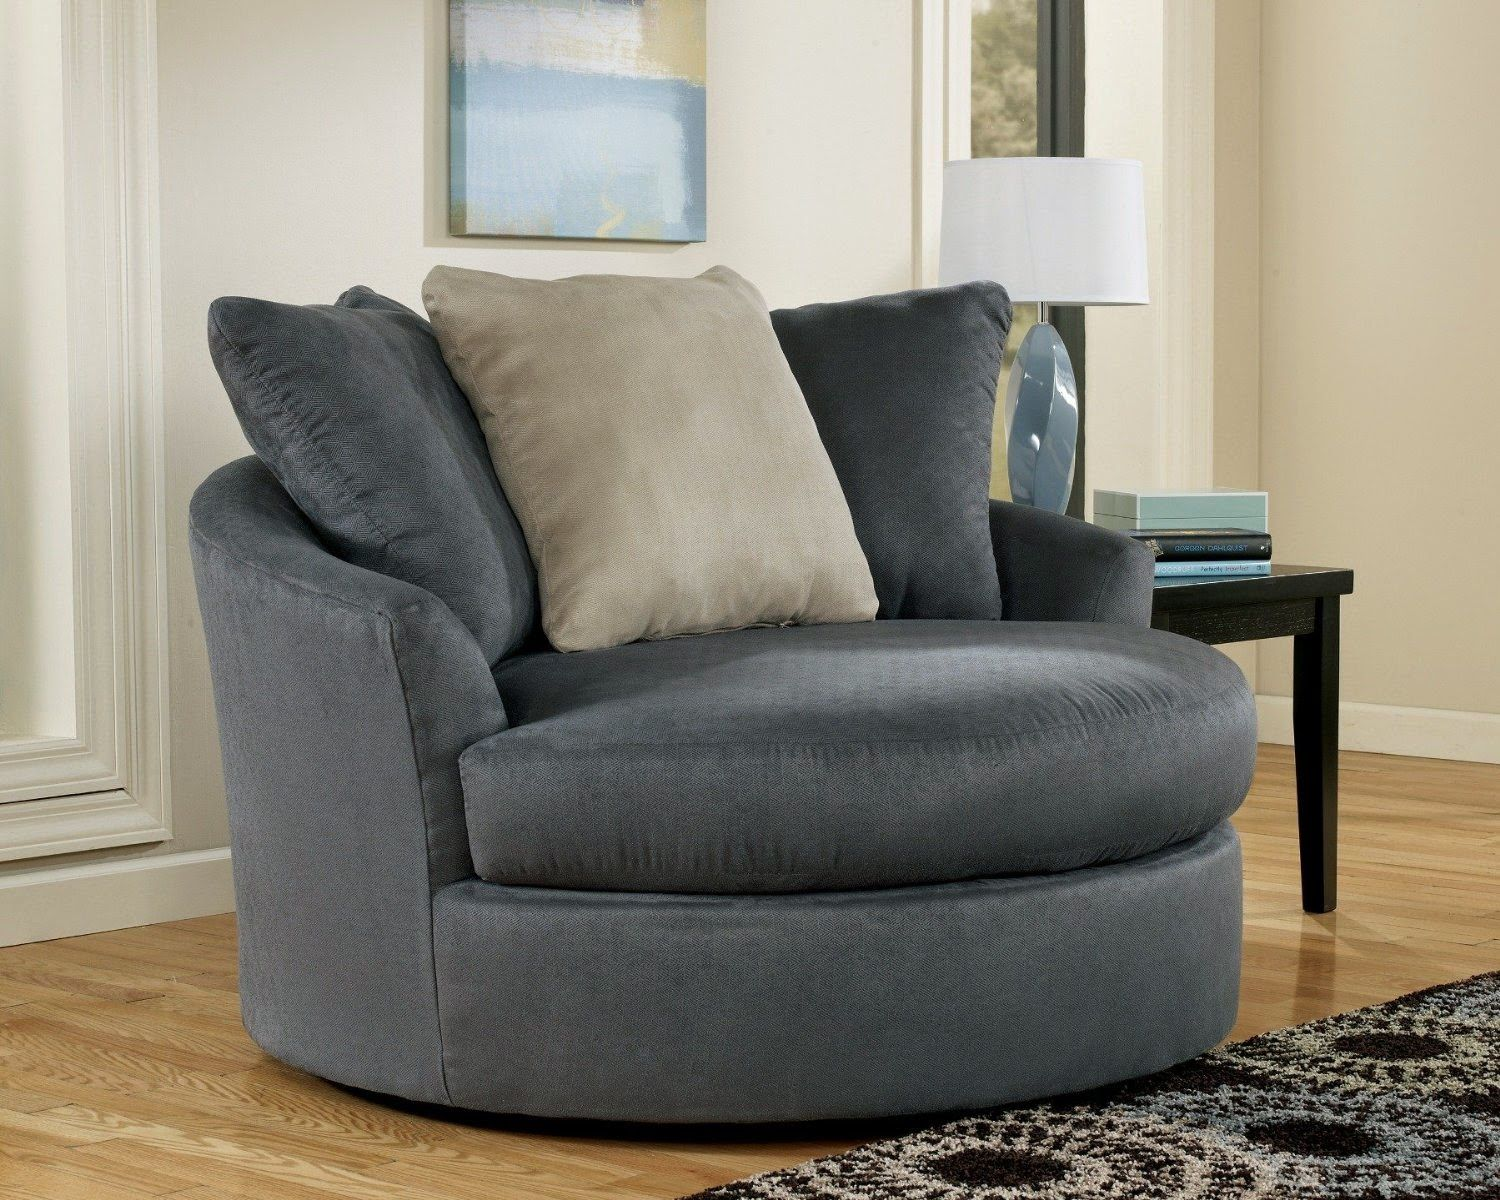 Curved Loveseat Cuddle Couch - Google Search